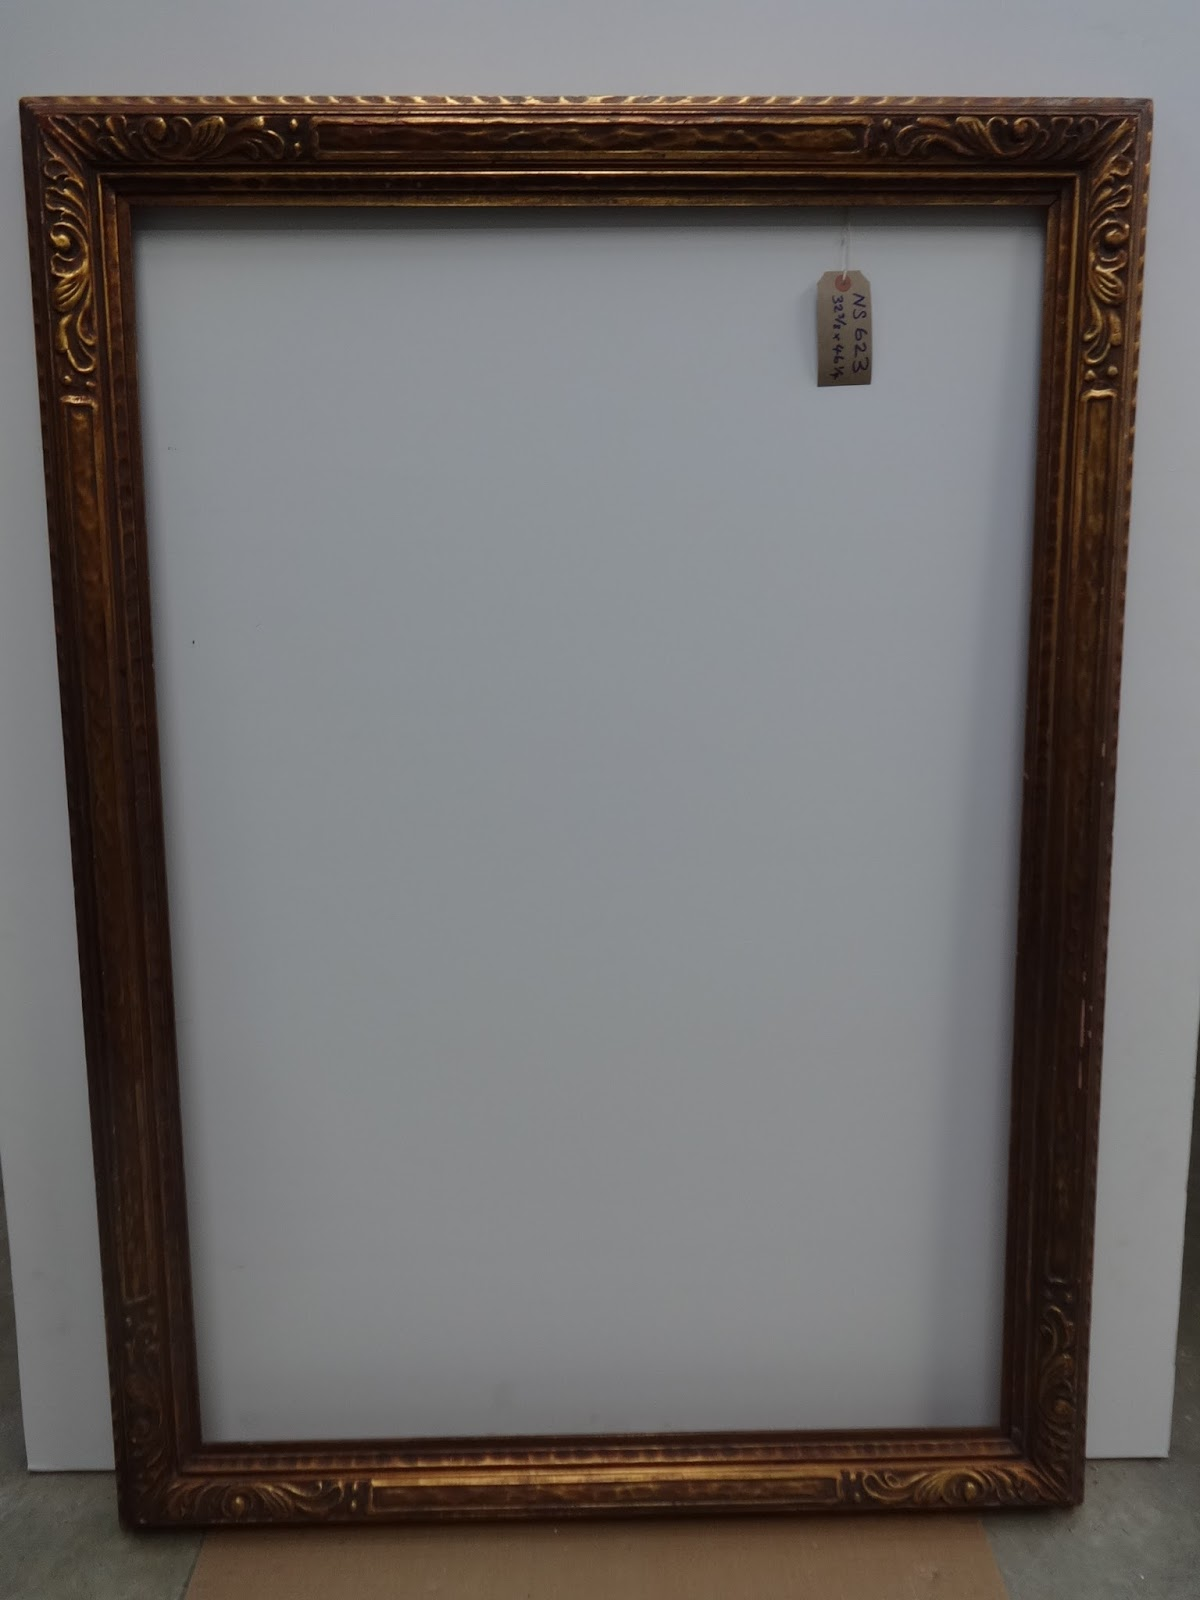 Antique frame sale american arts and crafts frame for Arts and crafts for sale